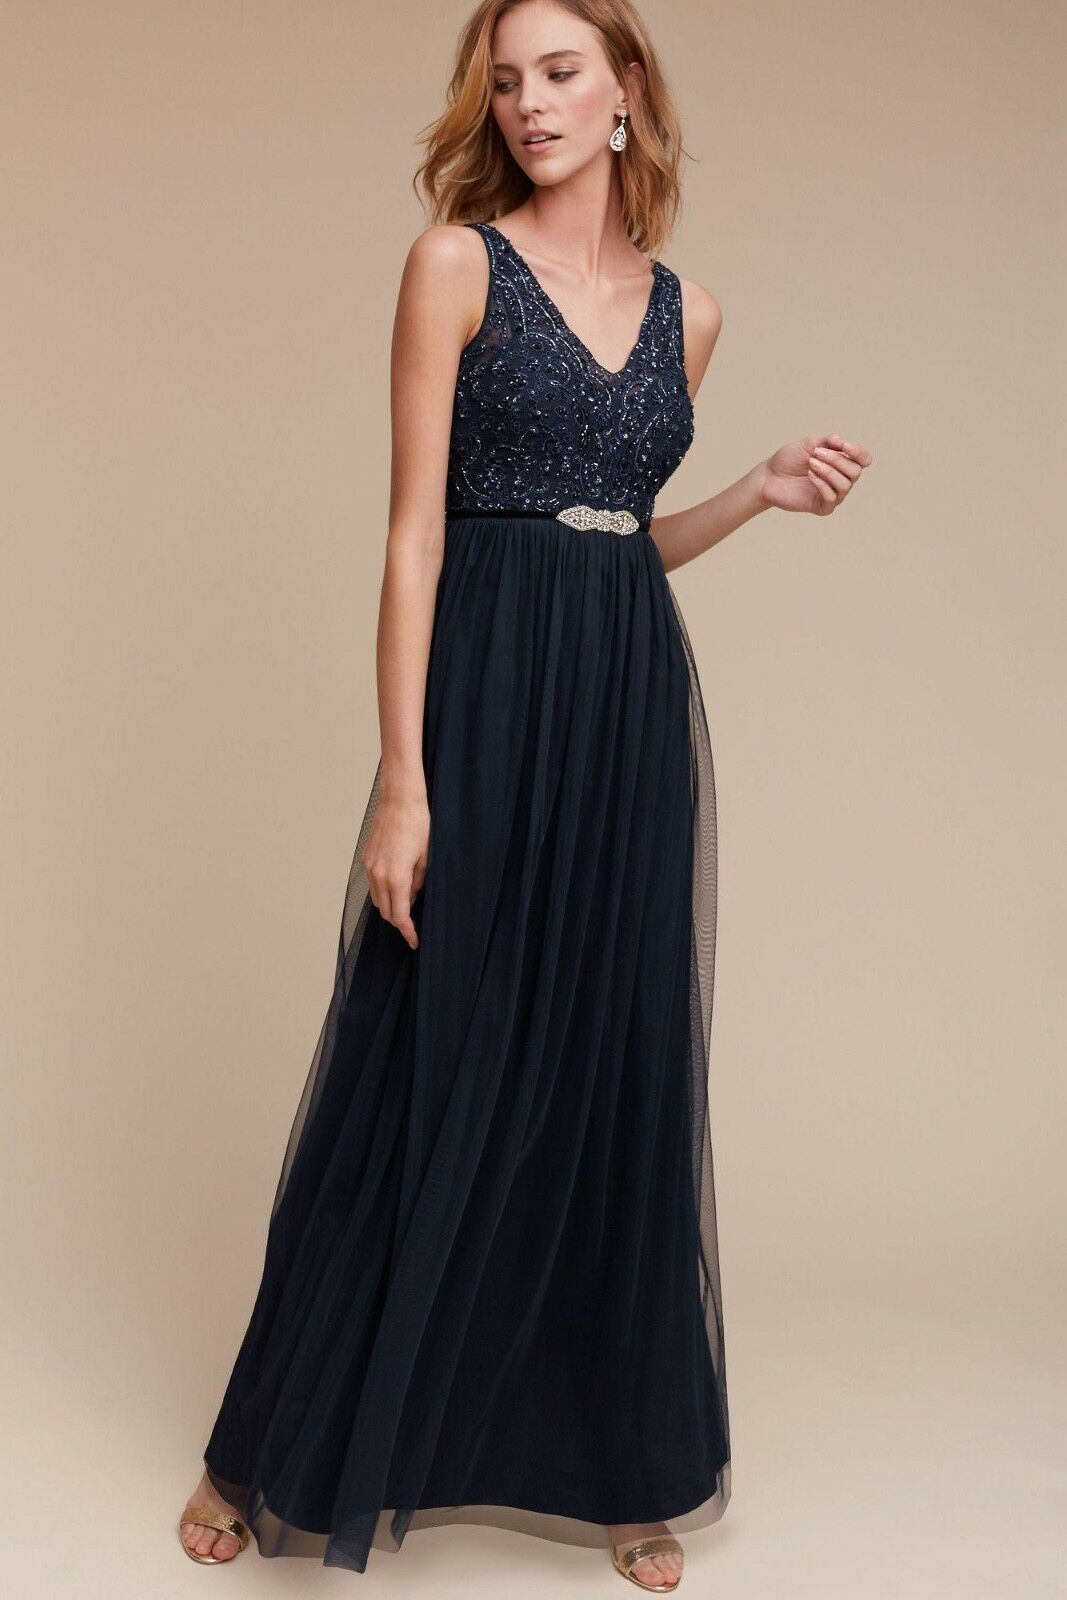 04545ef634e NWT Anthropologie BHLDN Exclusive Orlene Beaded Tulle Gown Dress Sz ...